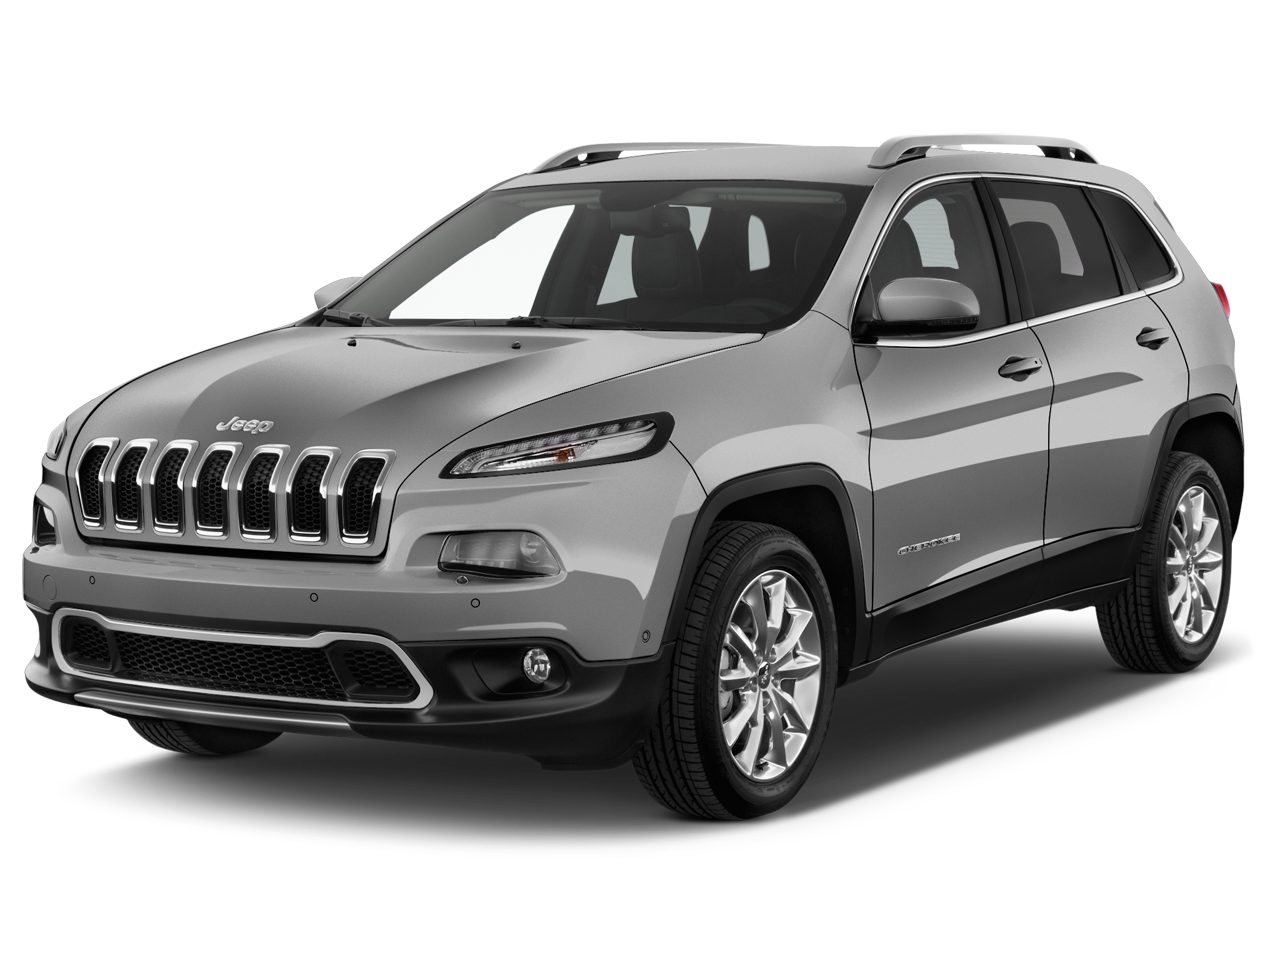 new 2017 jeep cherokee limited near wheat ridge co medved autoplex. Black Bedroom Furniture Sets. Home Design Ideas